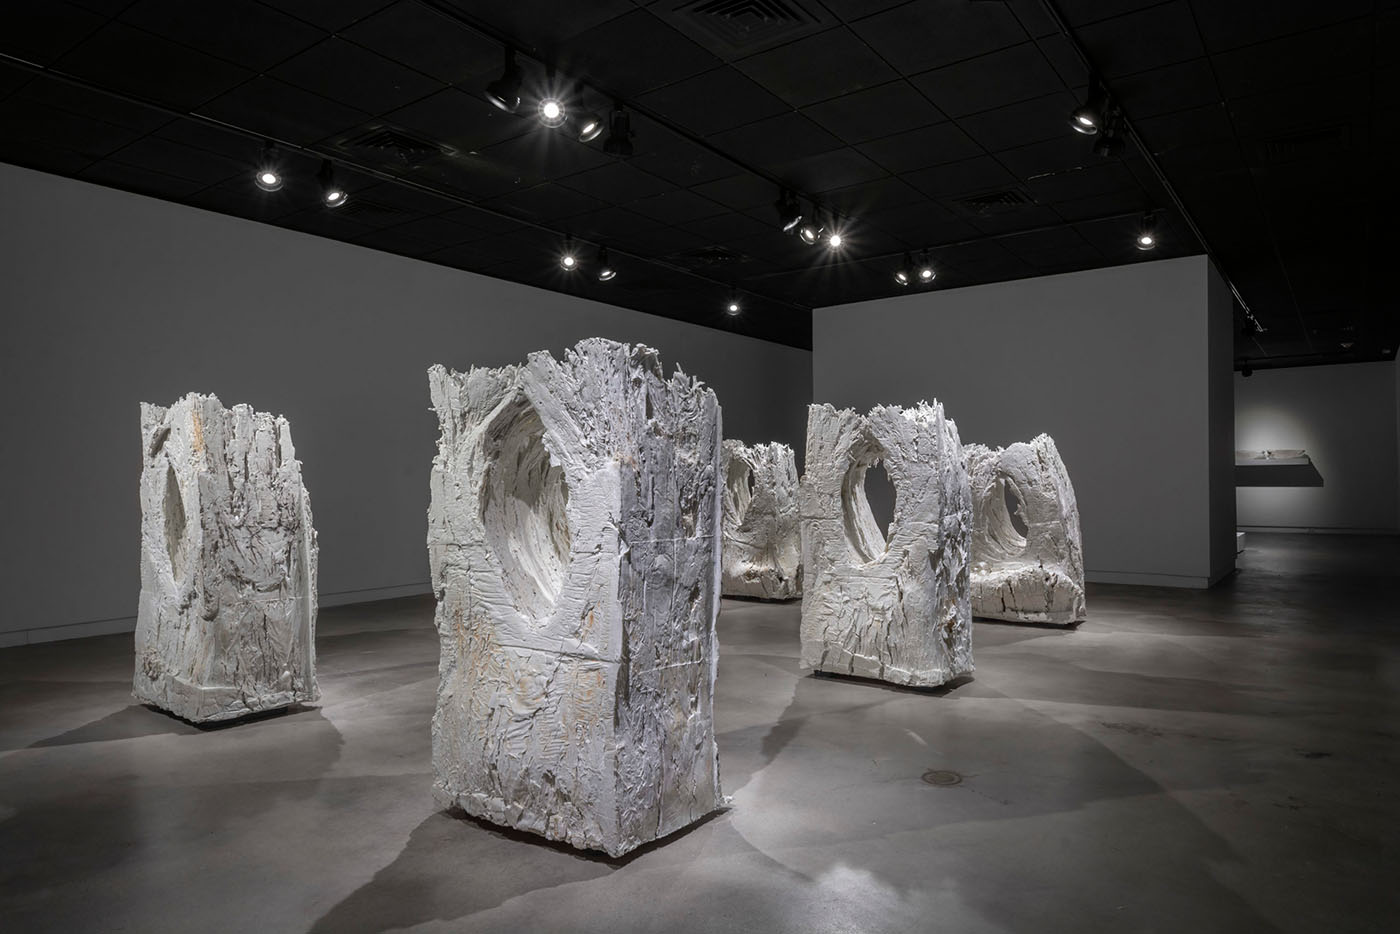 The uniqueness of Brad Evan Taylor's Growing Rocks relies on the relationship between time, nature and our own knowledge.